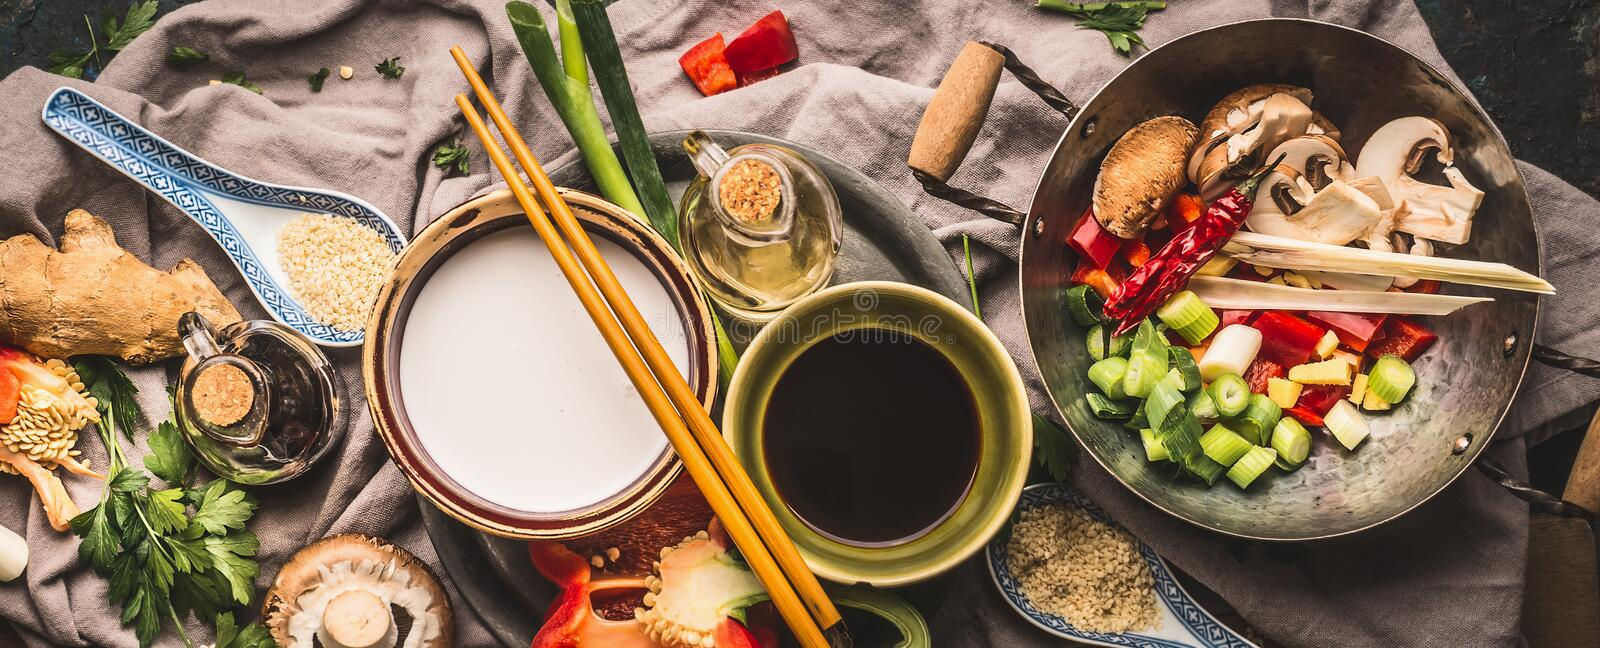 Vegetarian stir fry ingredients: chopped vegetables, spices, coconut milk, soy sauce, wok and chopsticks, top view, banner. Asian stock photo